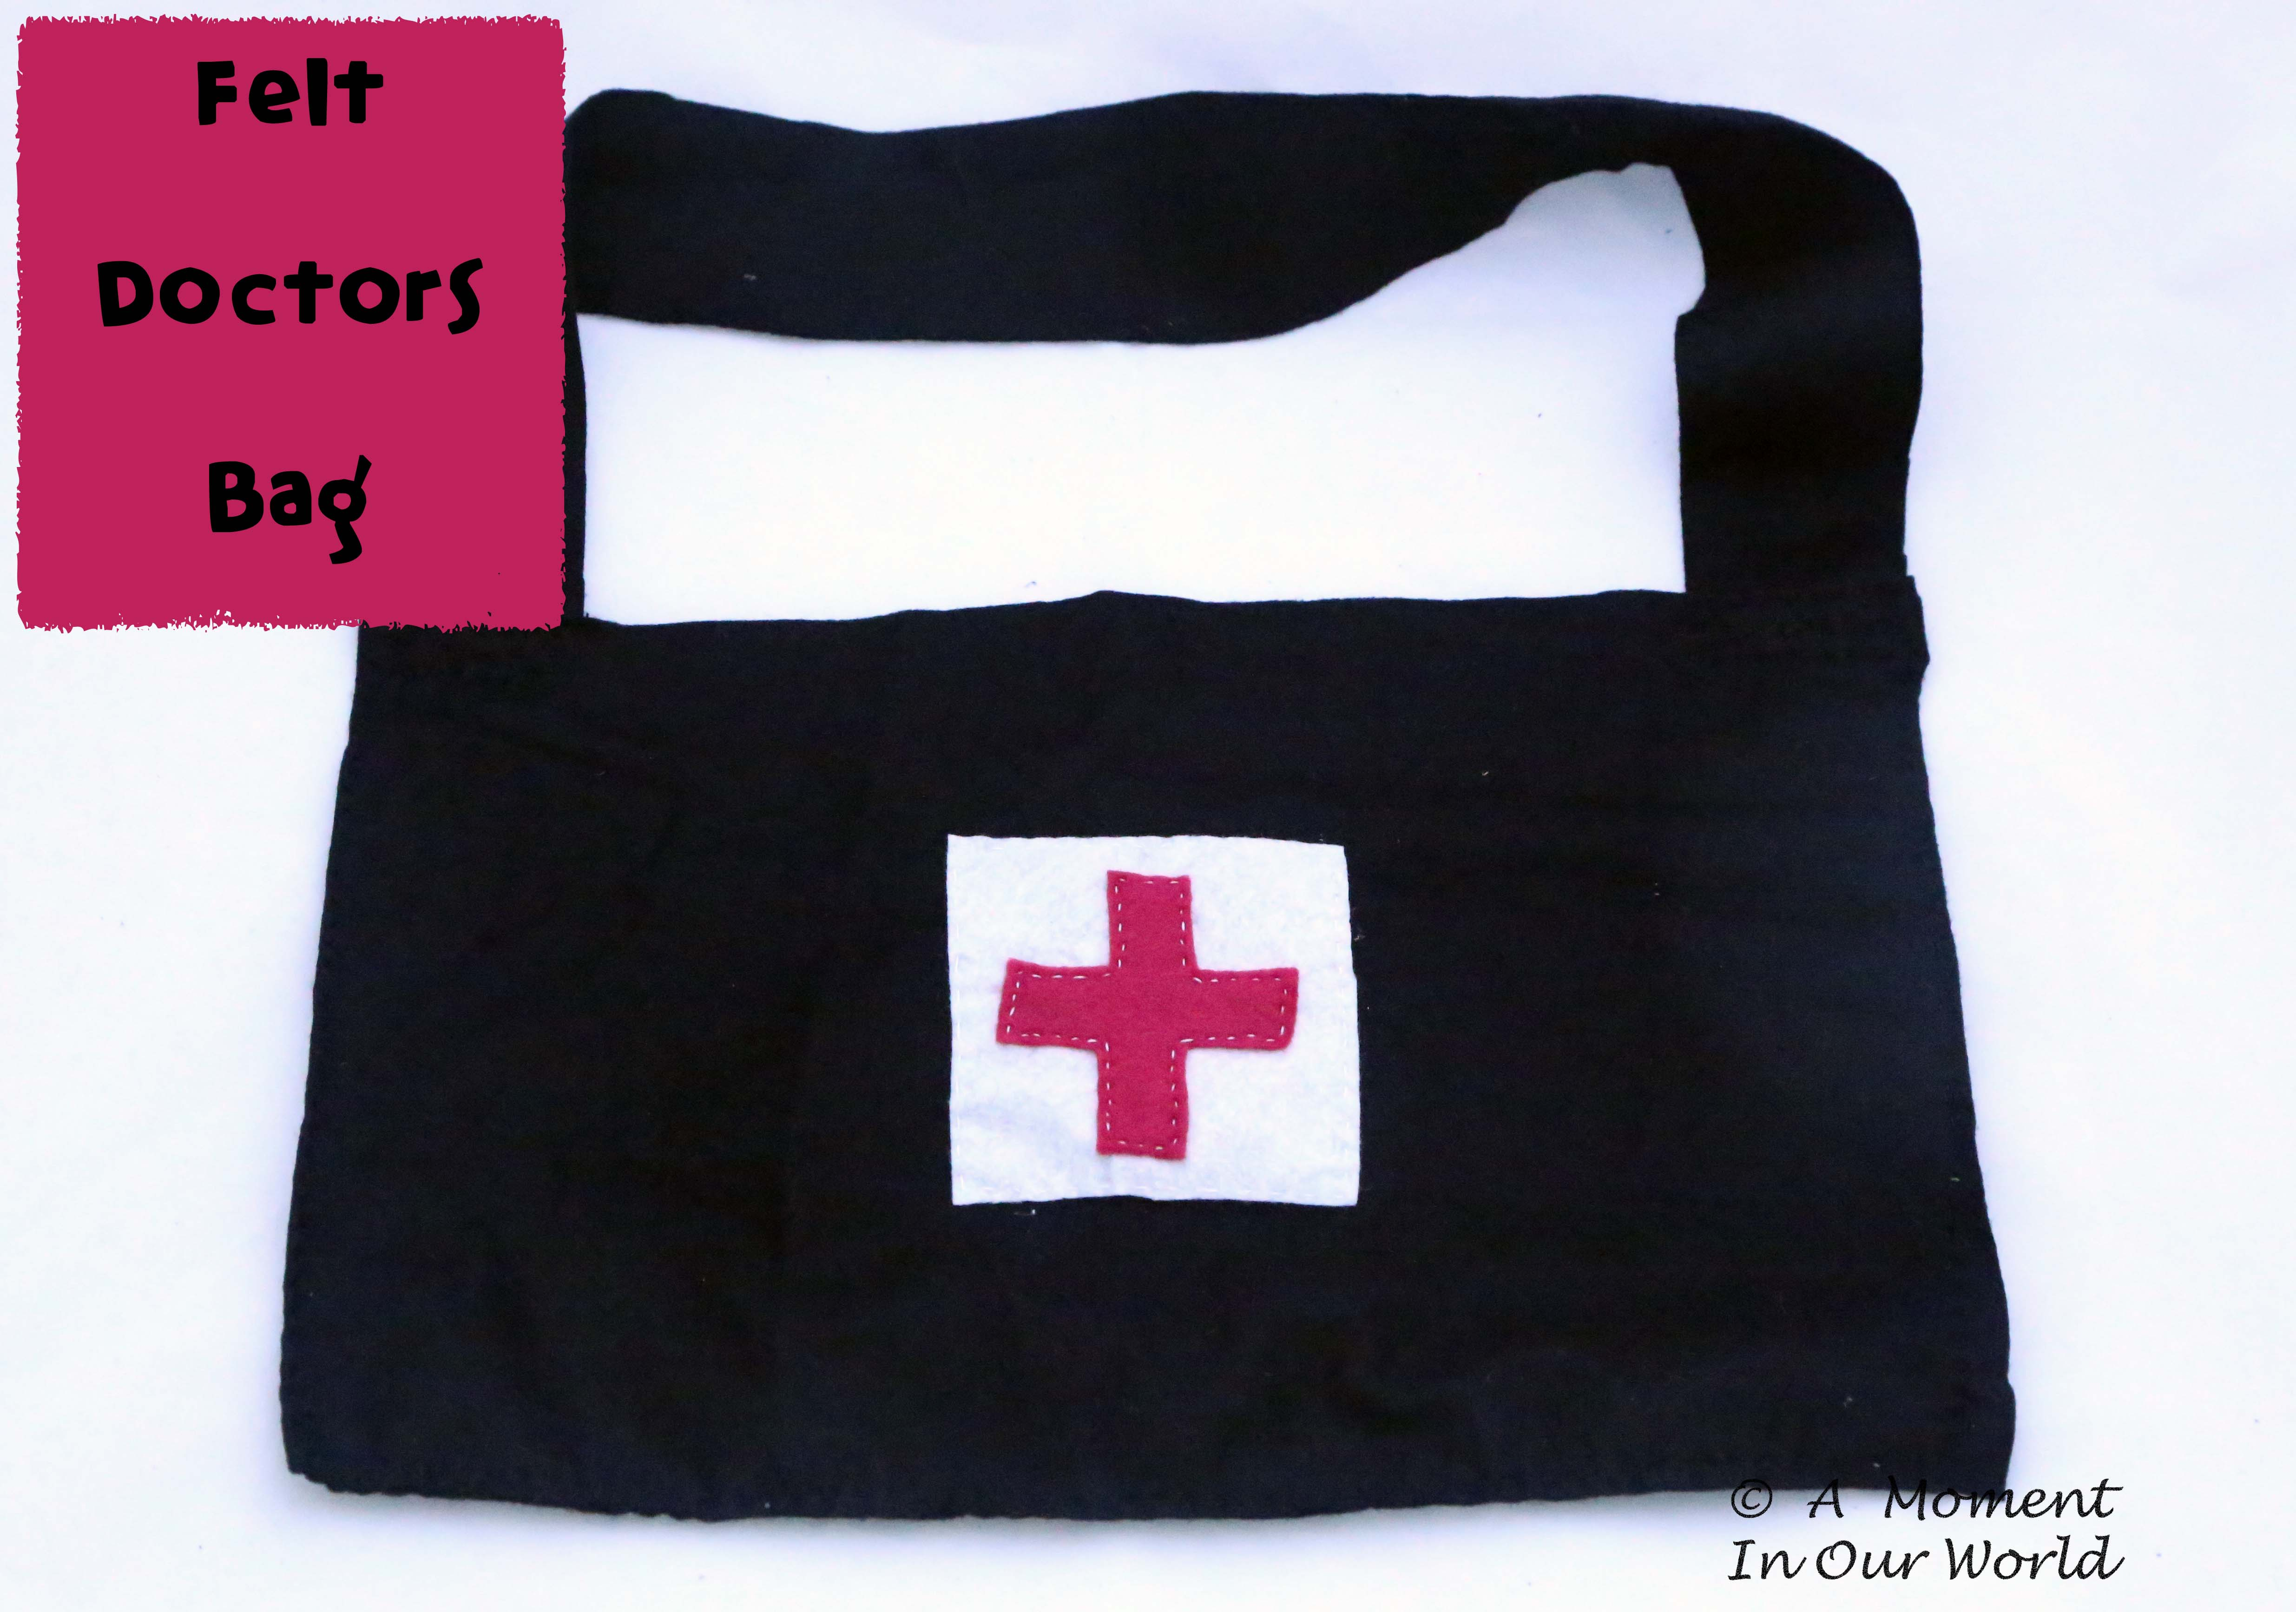 Have fun playing doctor's with this felt doctors bag.